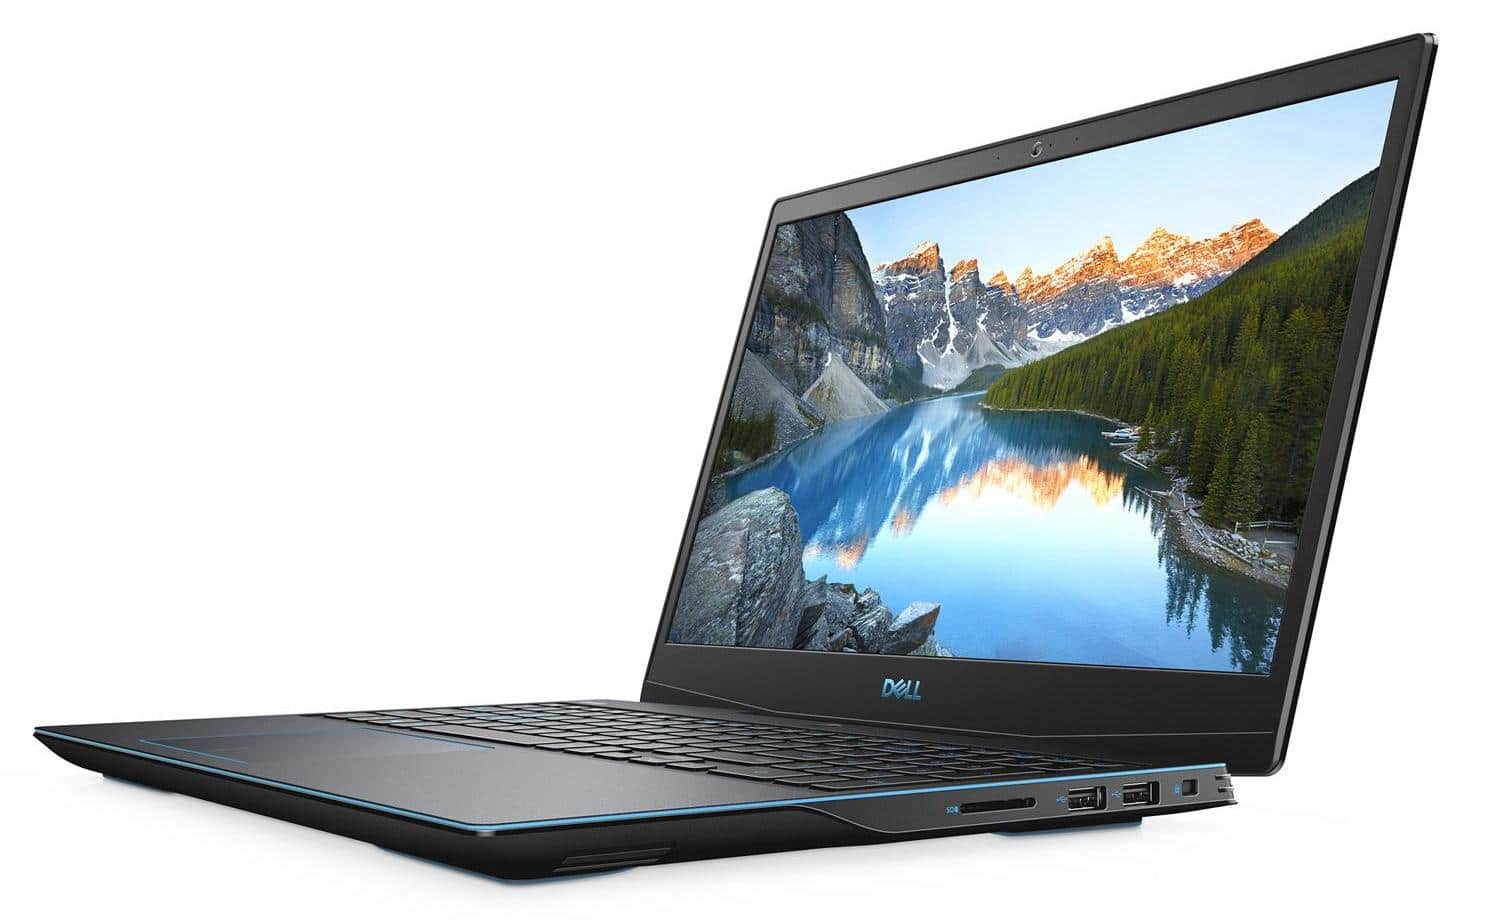 Dell G3 15 3590, PC gamer 15 pouces fin puissant (1199€)